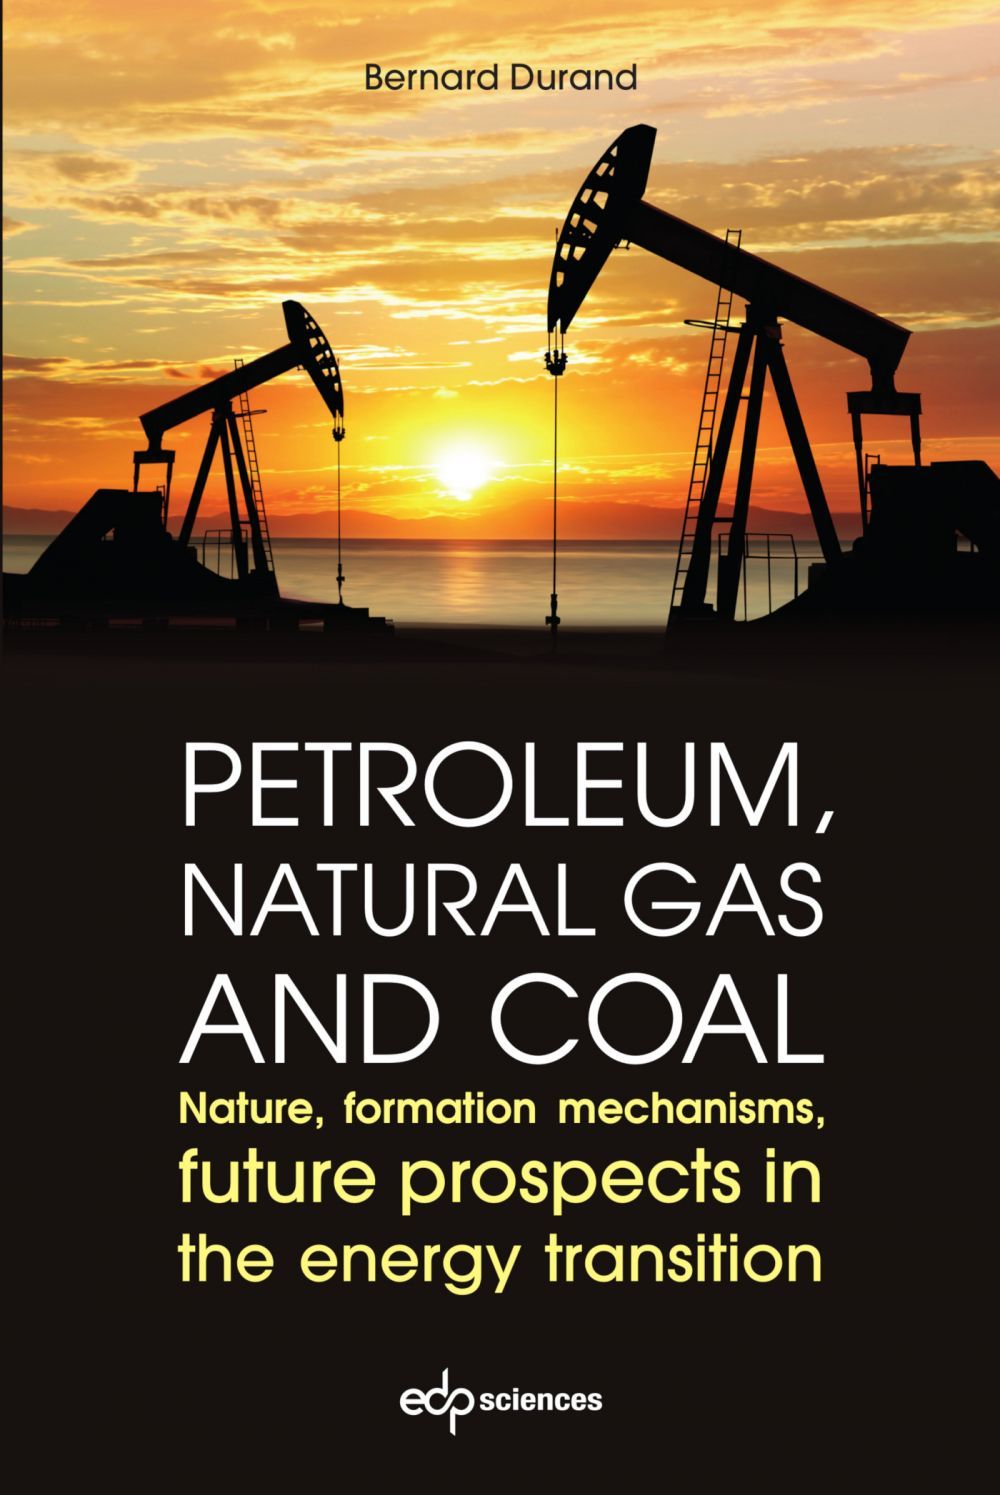 Petroleum, natural gas and coal